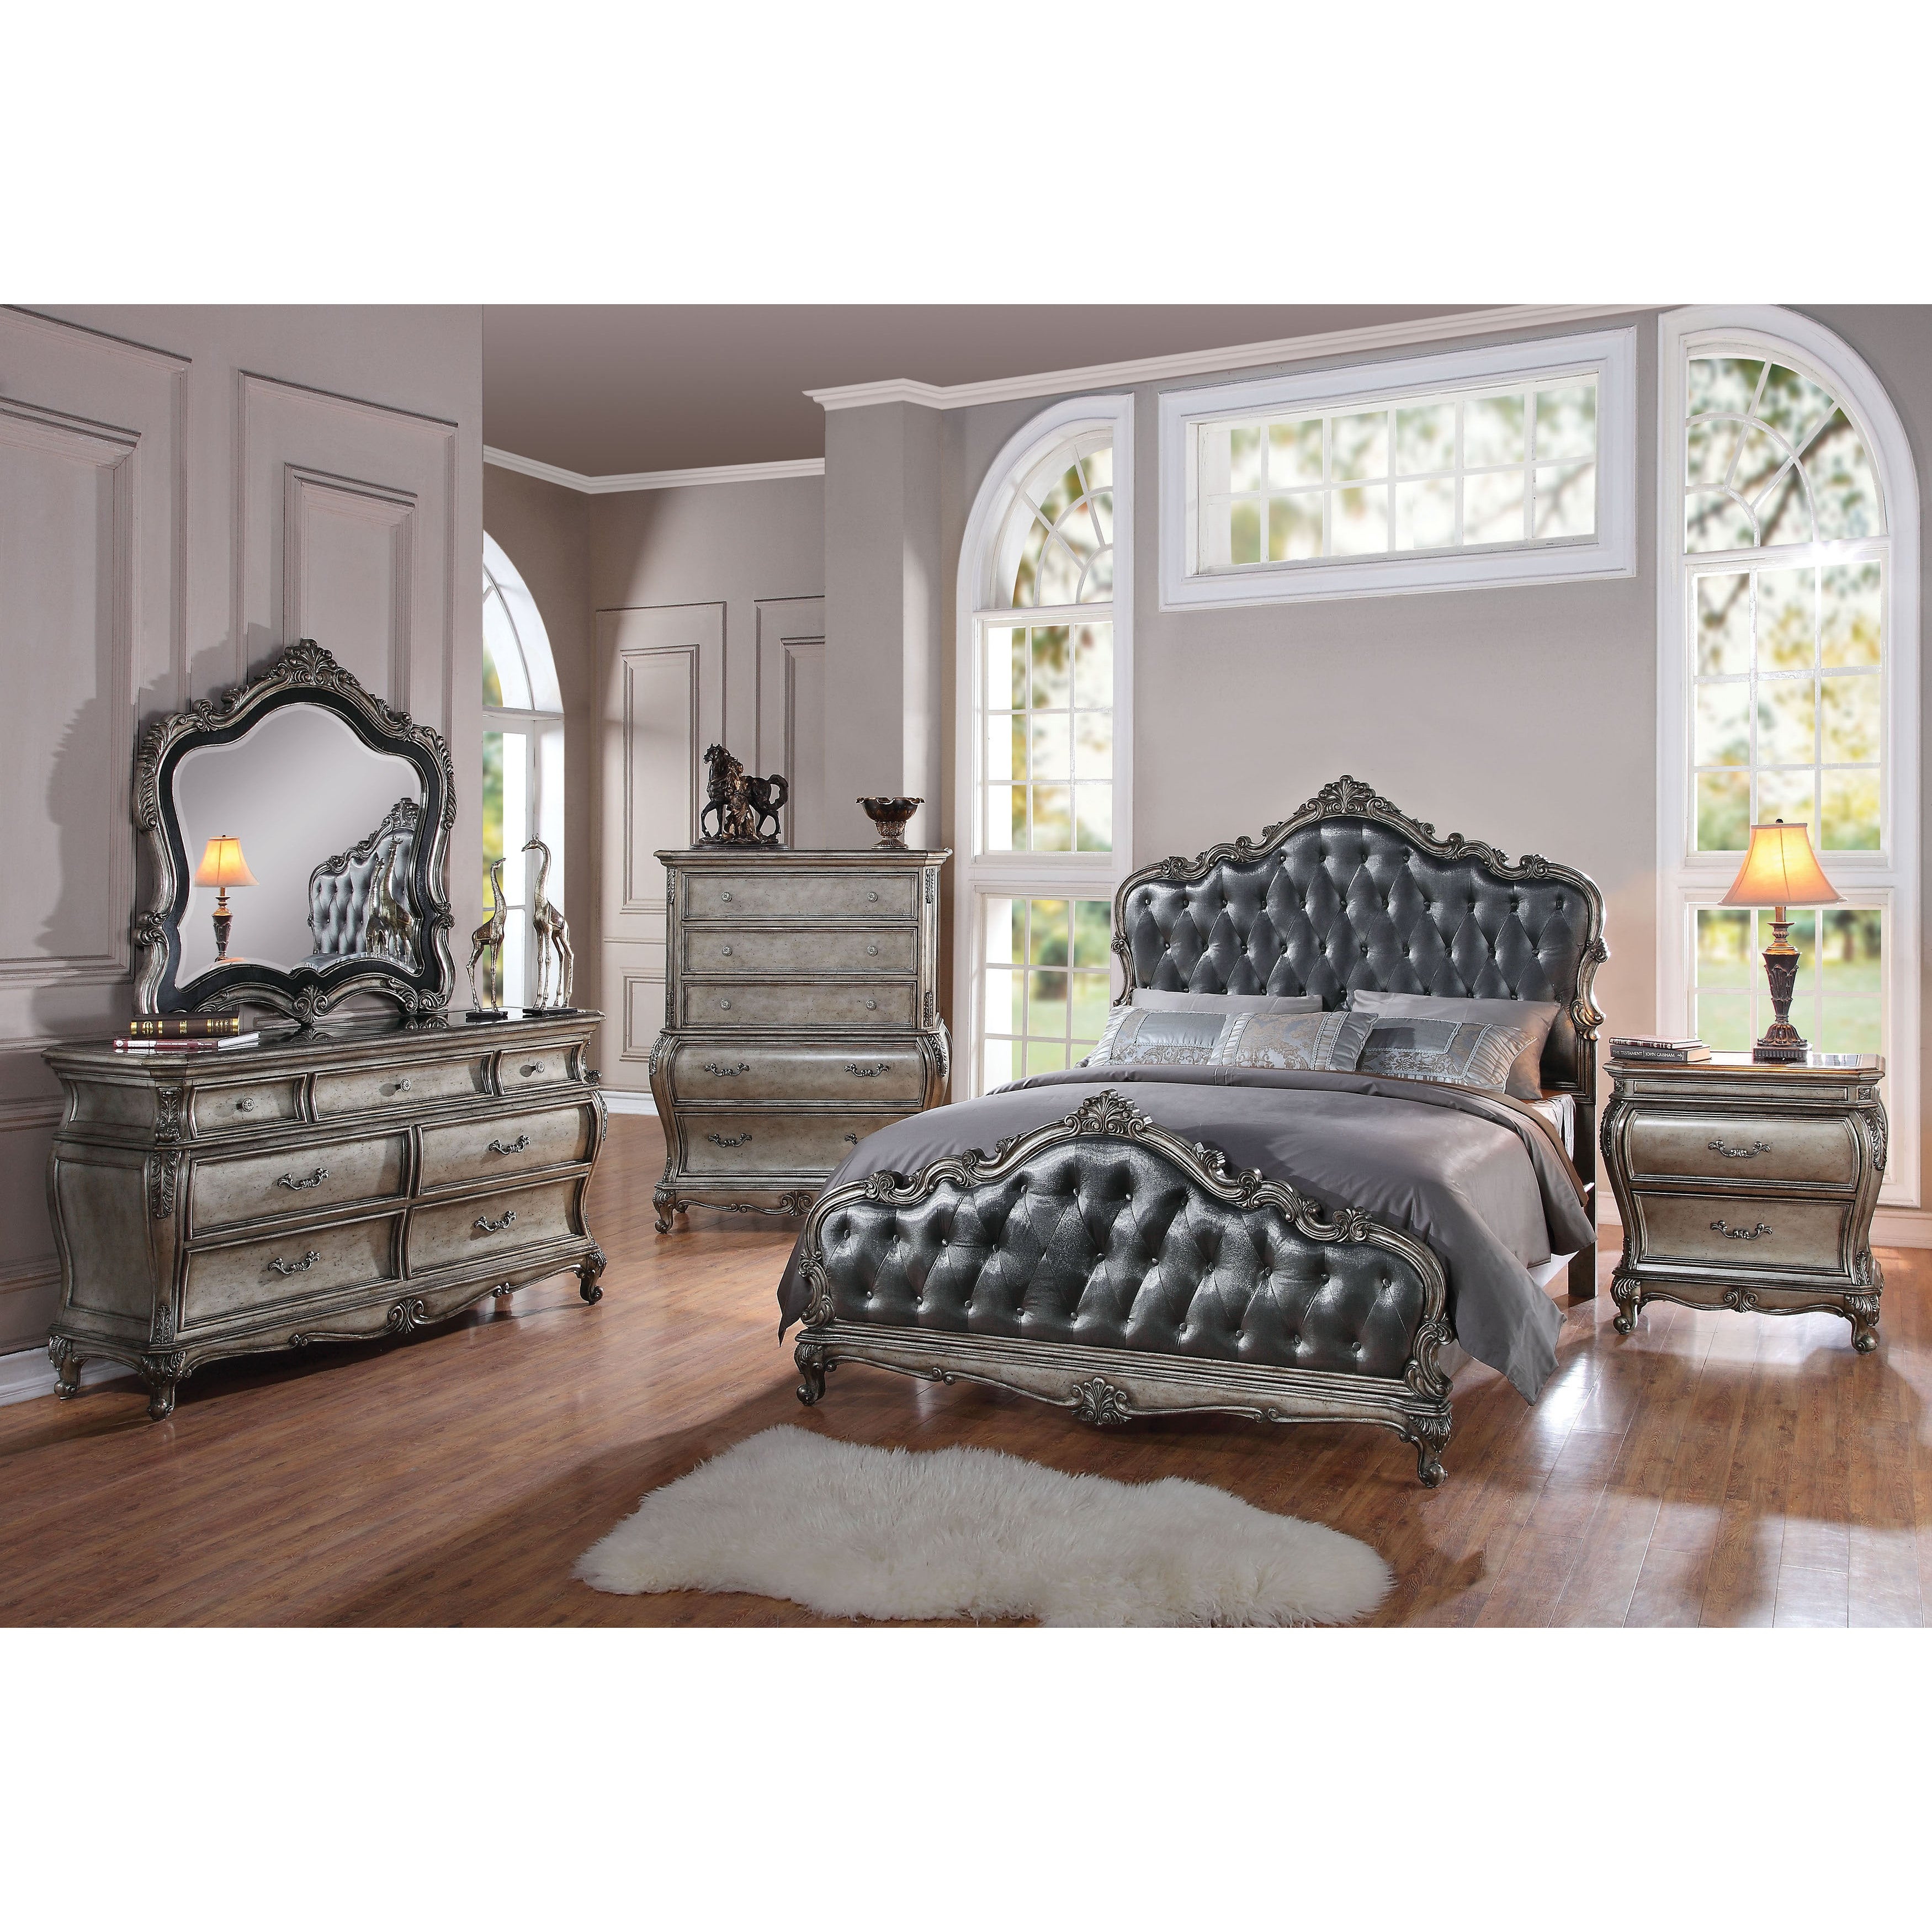 Charming Acme Furniture Chantelle Bed, Antique Platinum And Silver Gray Silk Like  Fabric   Free Shipping Today   Overstock   19844439